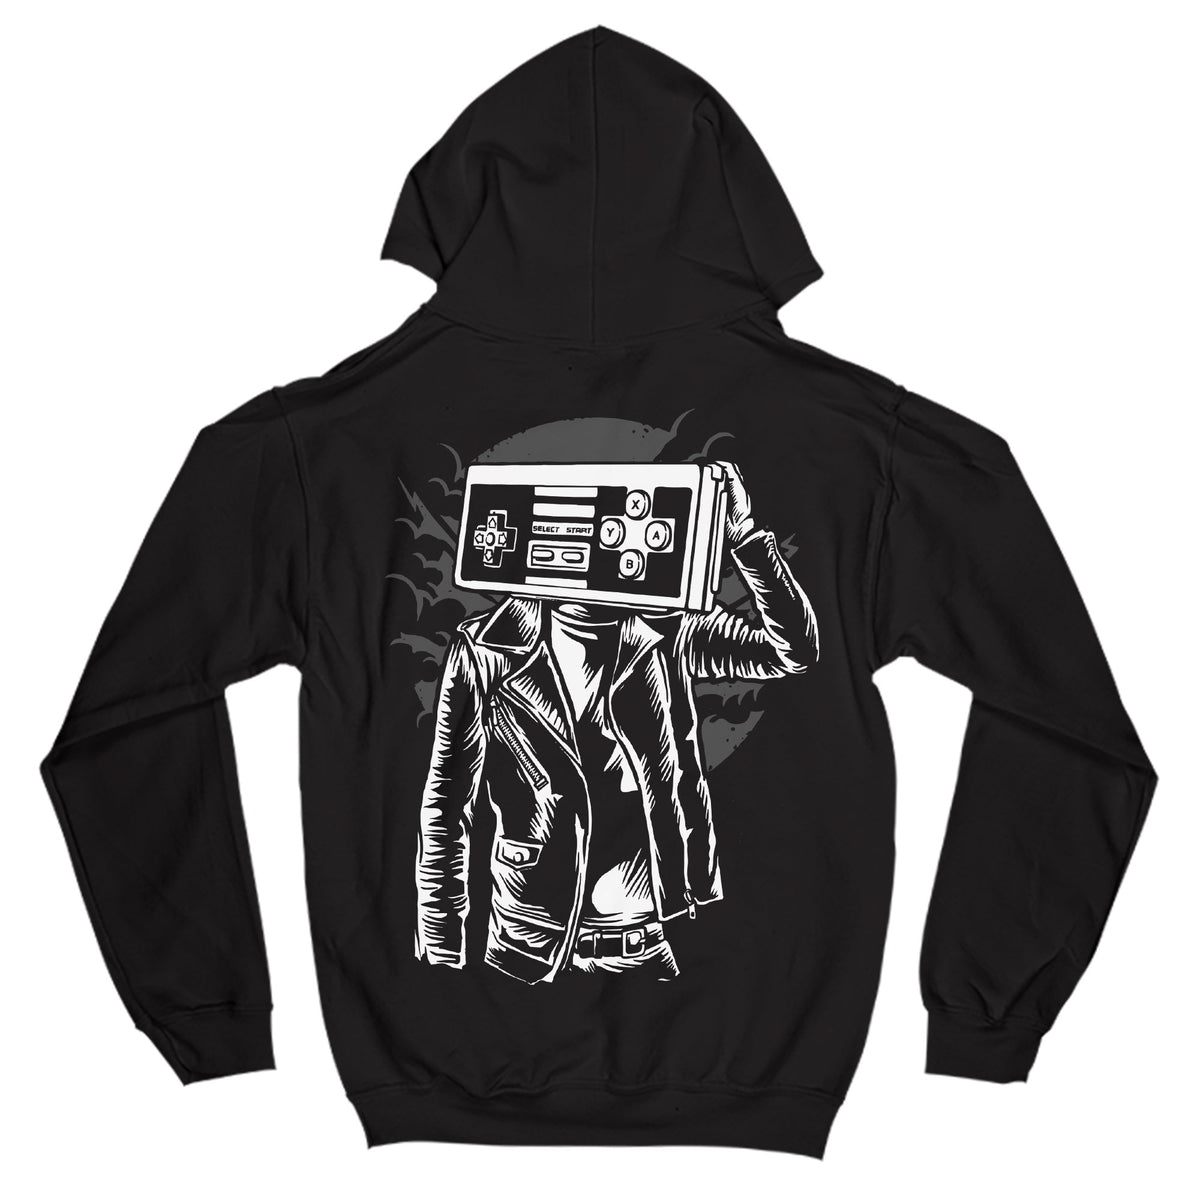 Street Gamer Primate Novelty Hoodie Adults: S